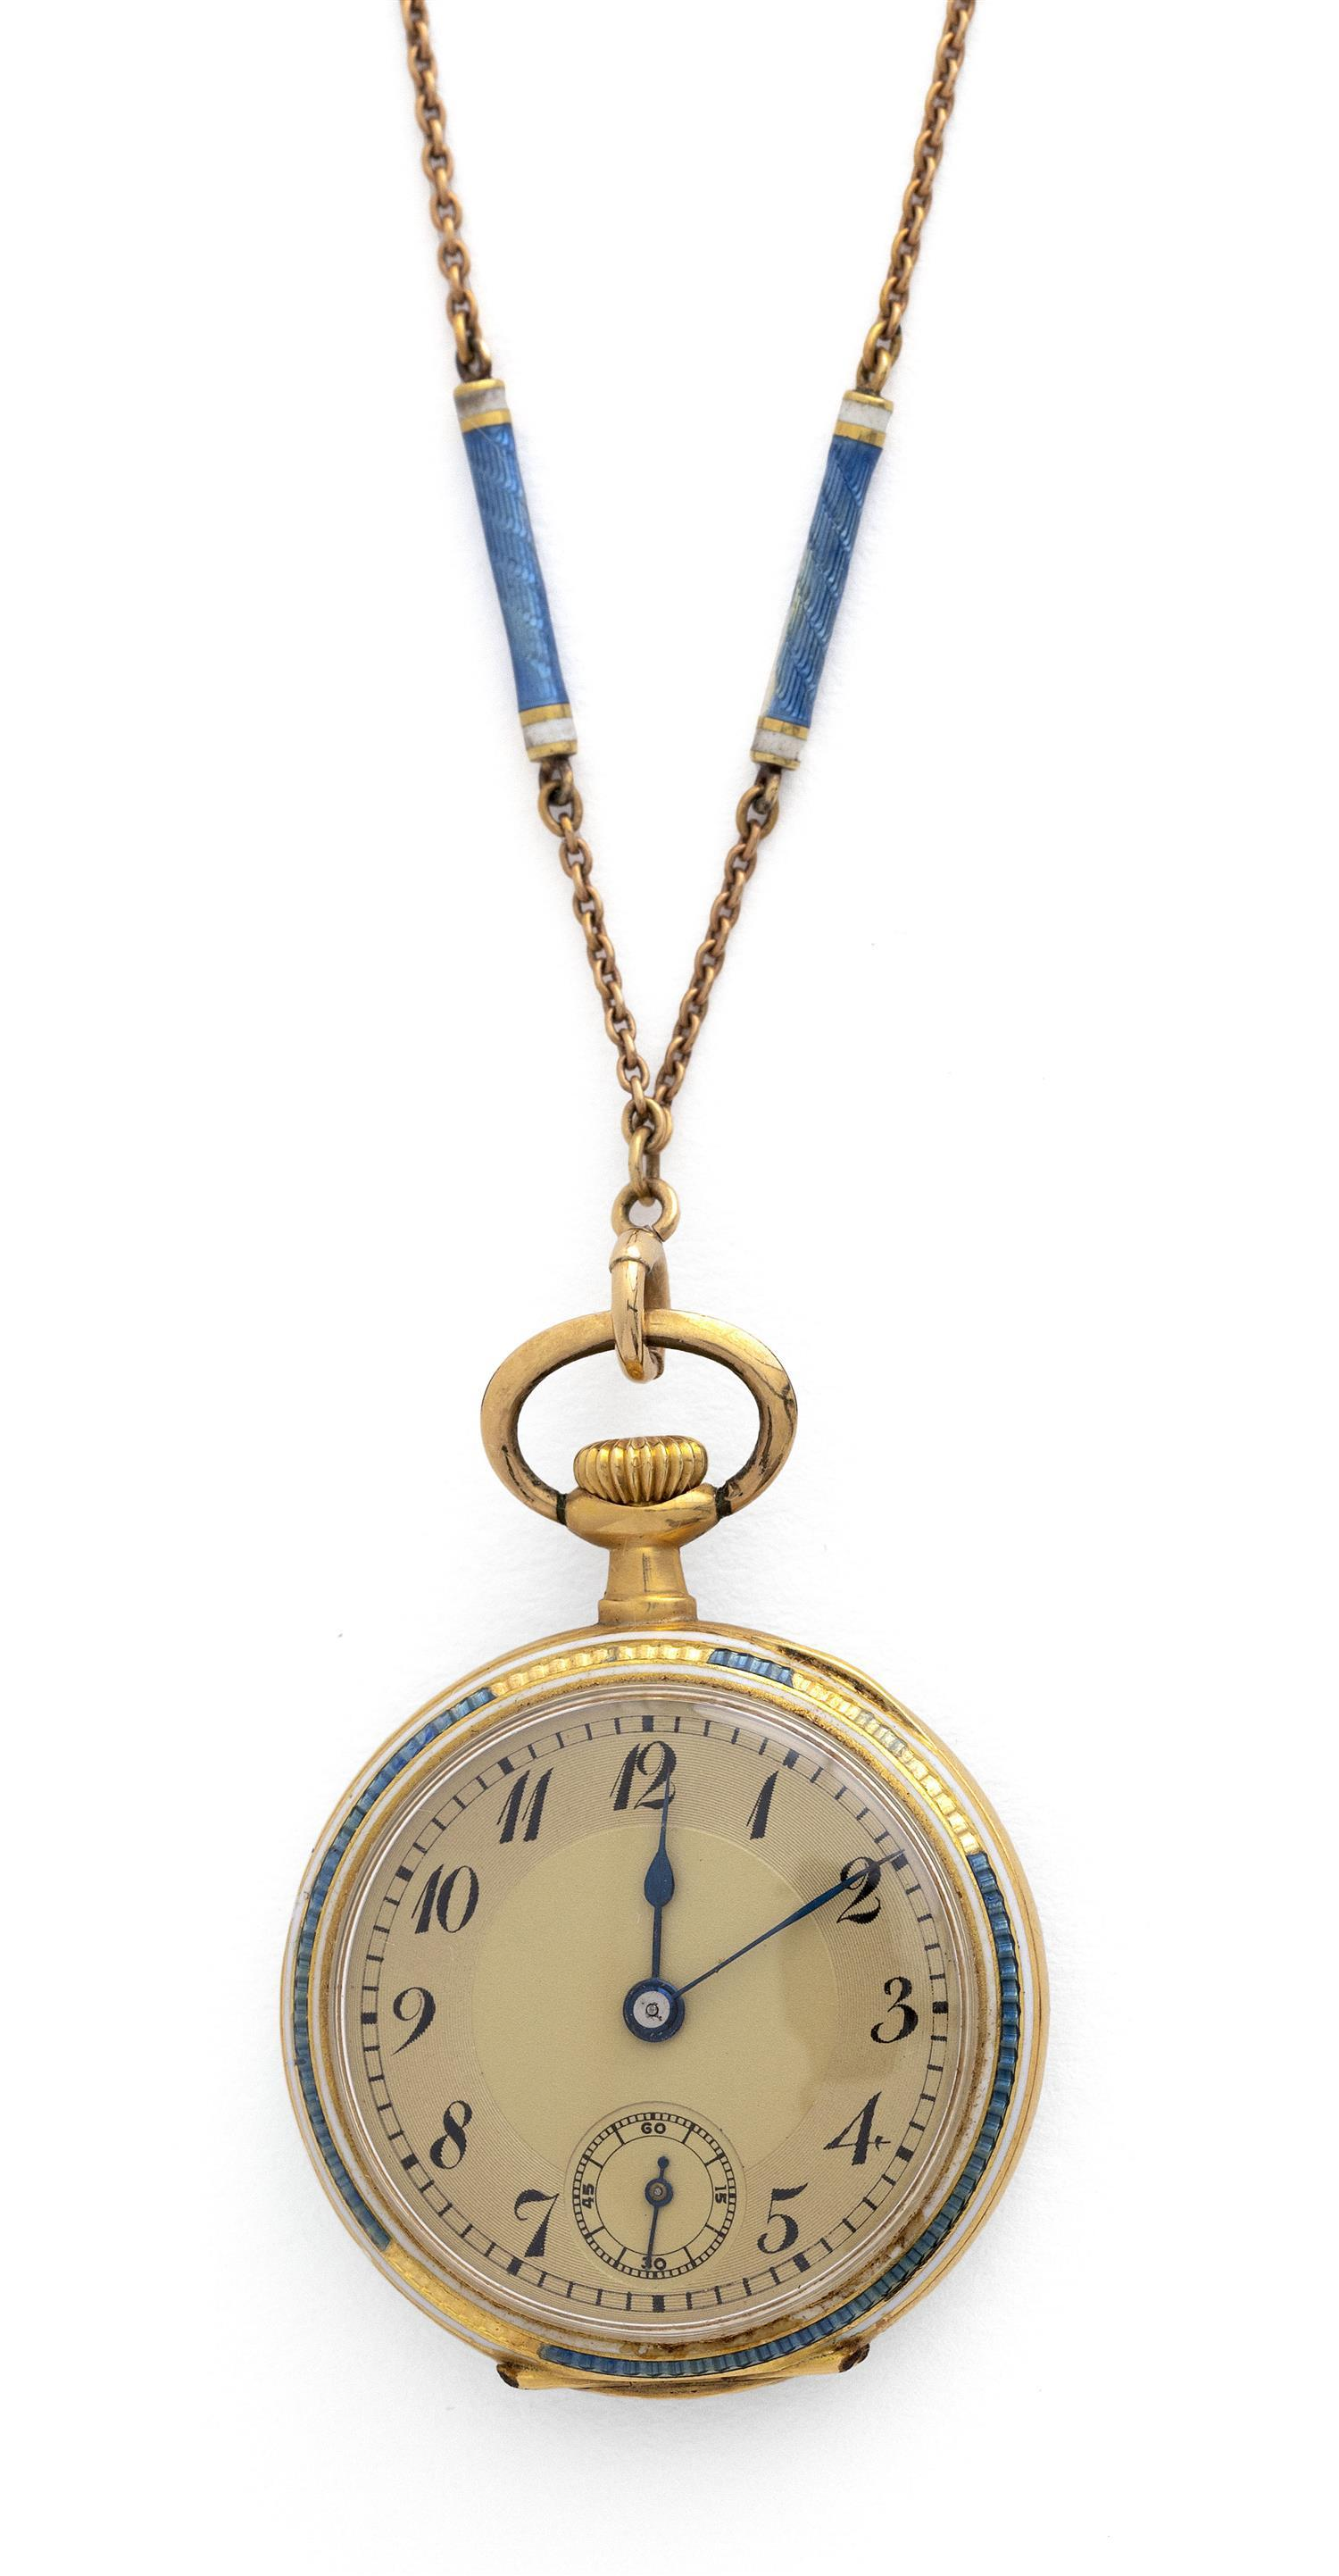 FRENCH 18KT GOLD AND ENAMEL LADY'S OPEN FACE POCKET WATCH AND CHAIN Watch lacking maker's mark. Dial with Arabic numerals and subsid.